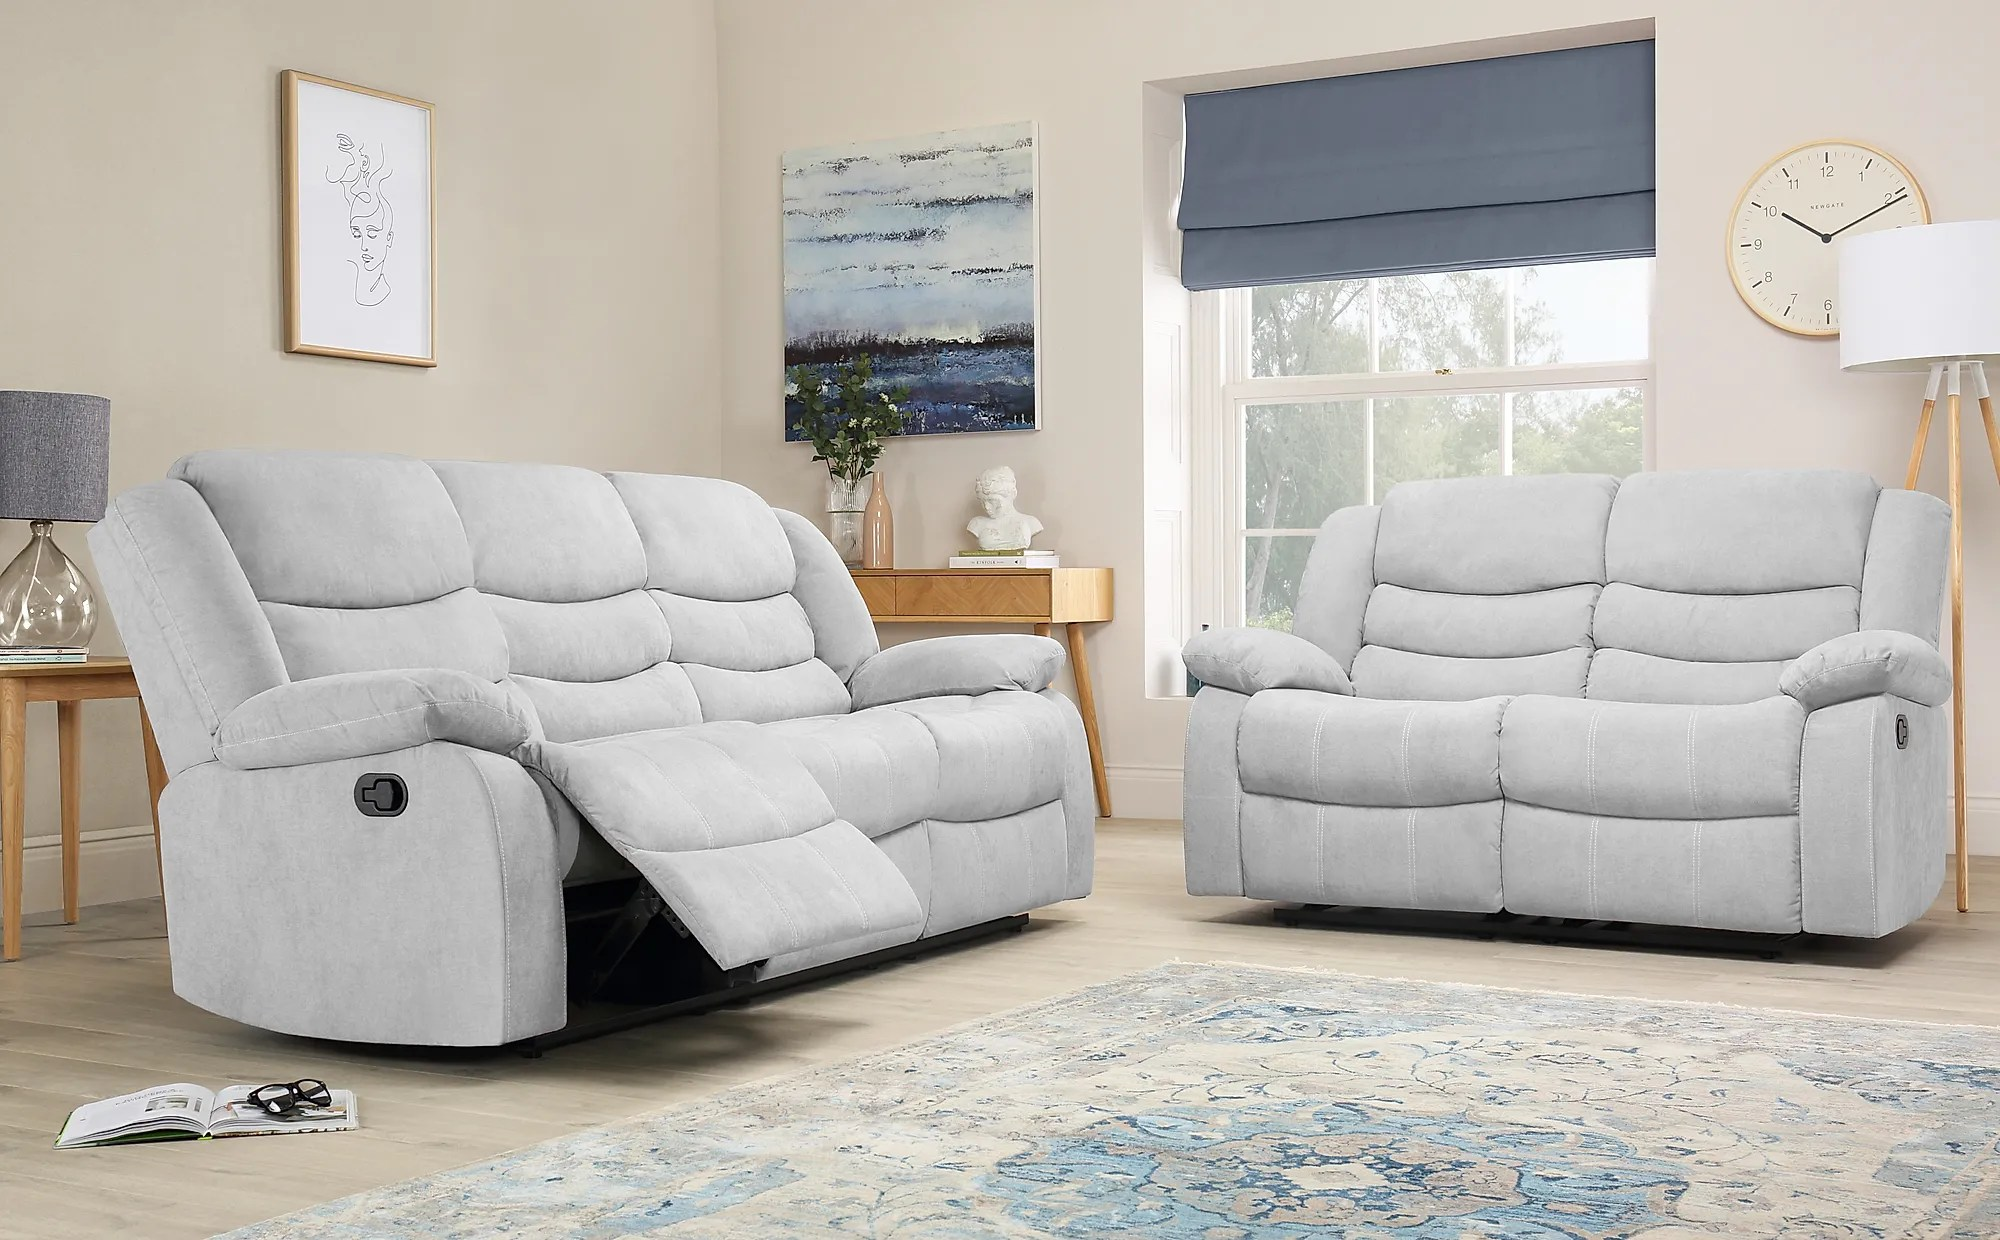 Sorrento Dove Grey Plush Fabric 3 2 Seater Recliner Sofa Set - Lydia 2 Seater Sofa